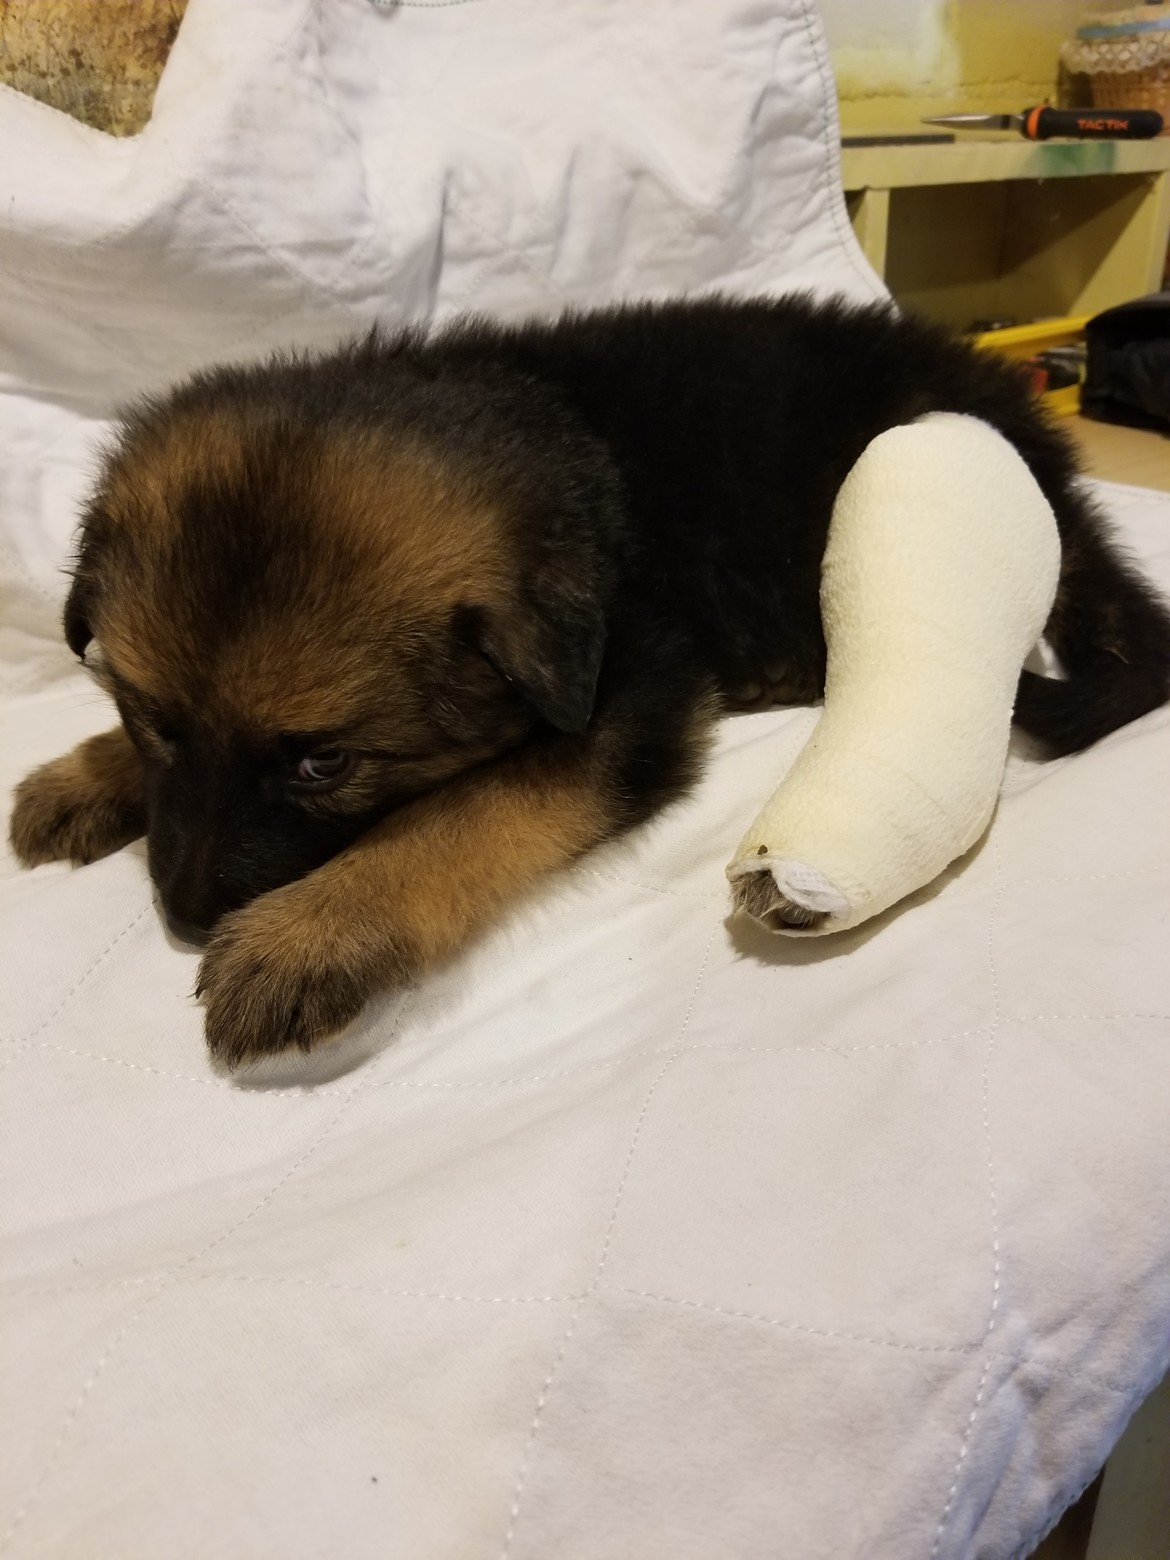 Six weeks old with a shattered leg.